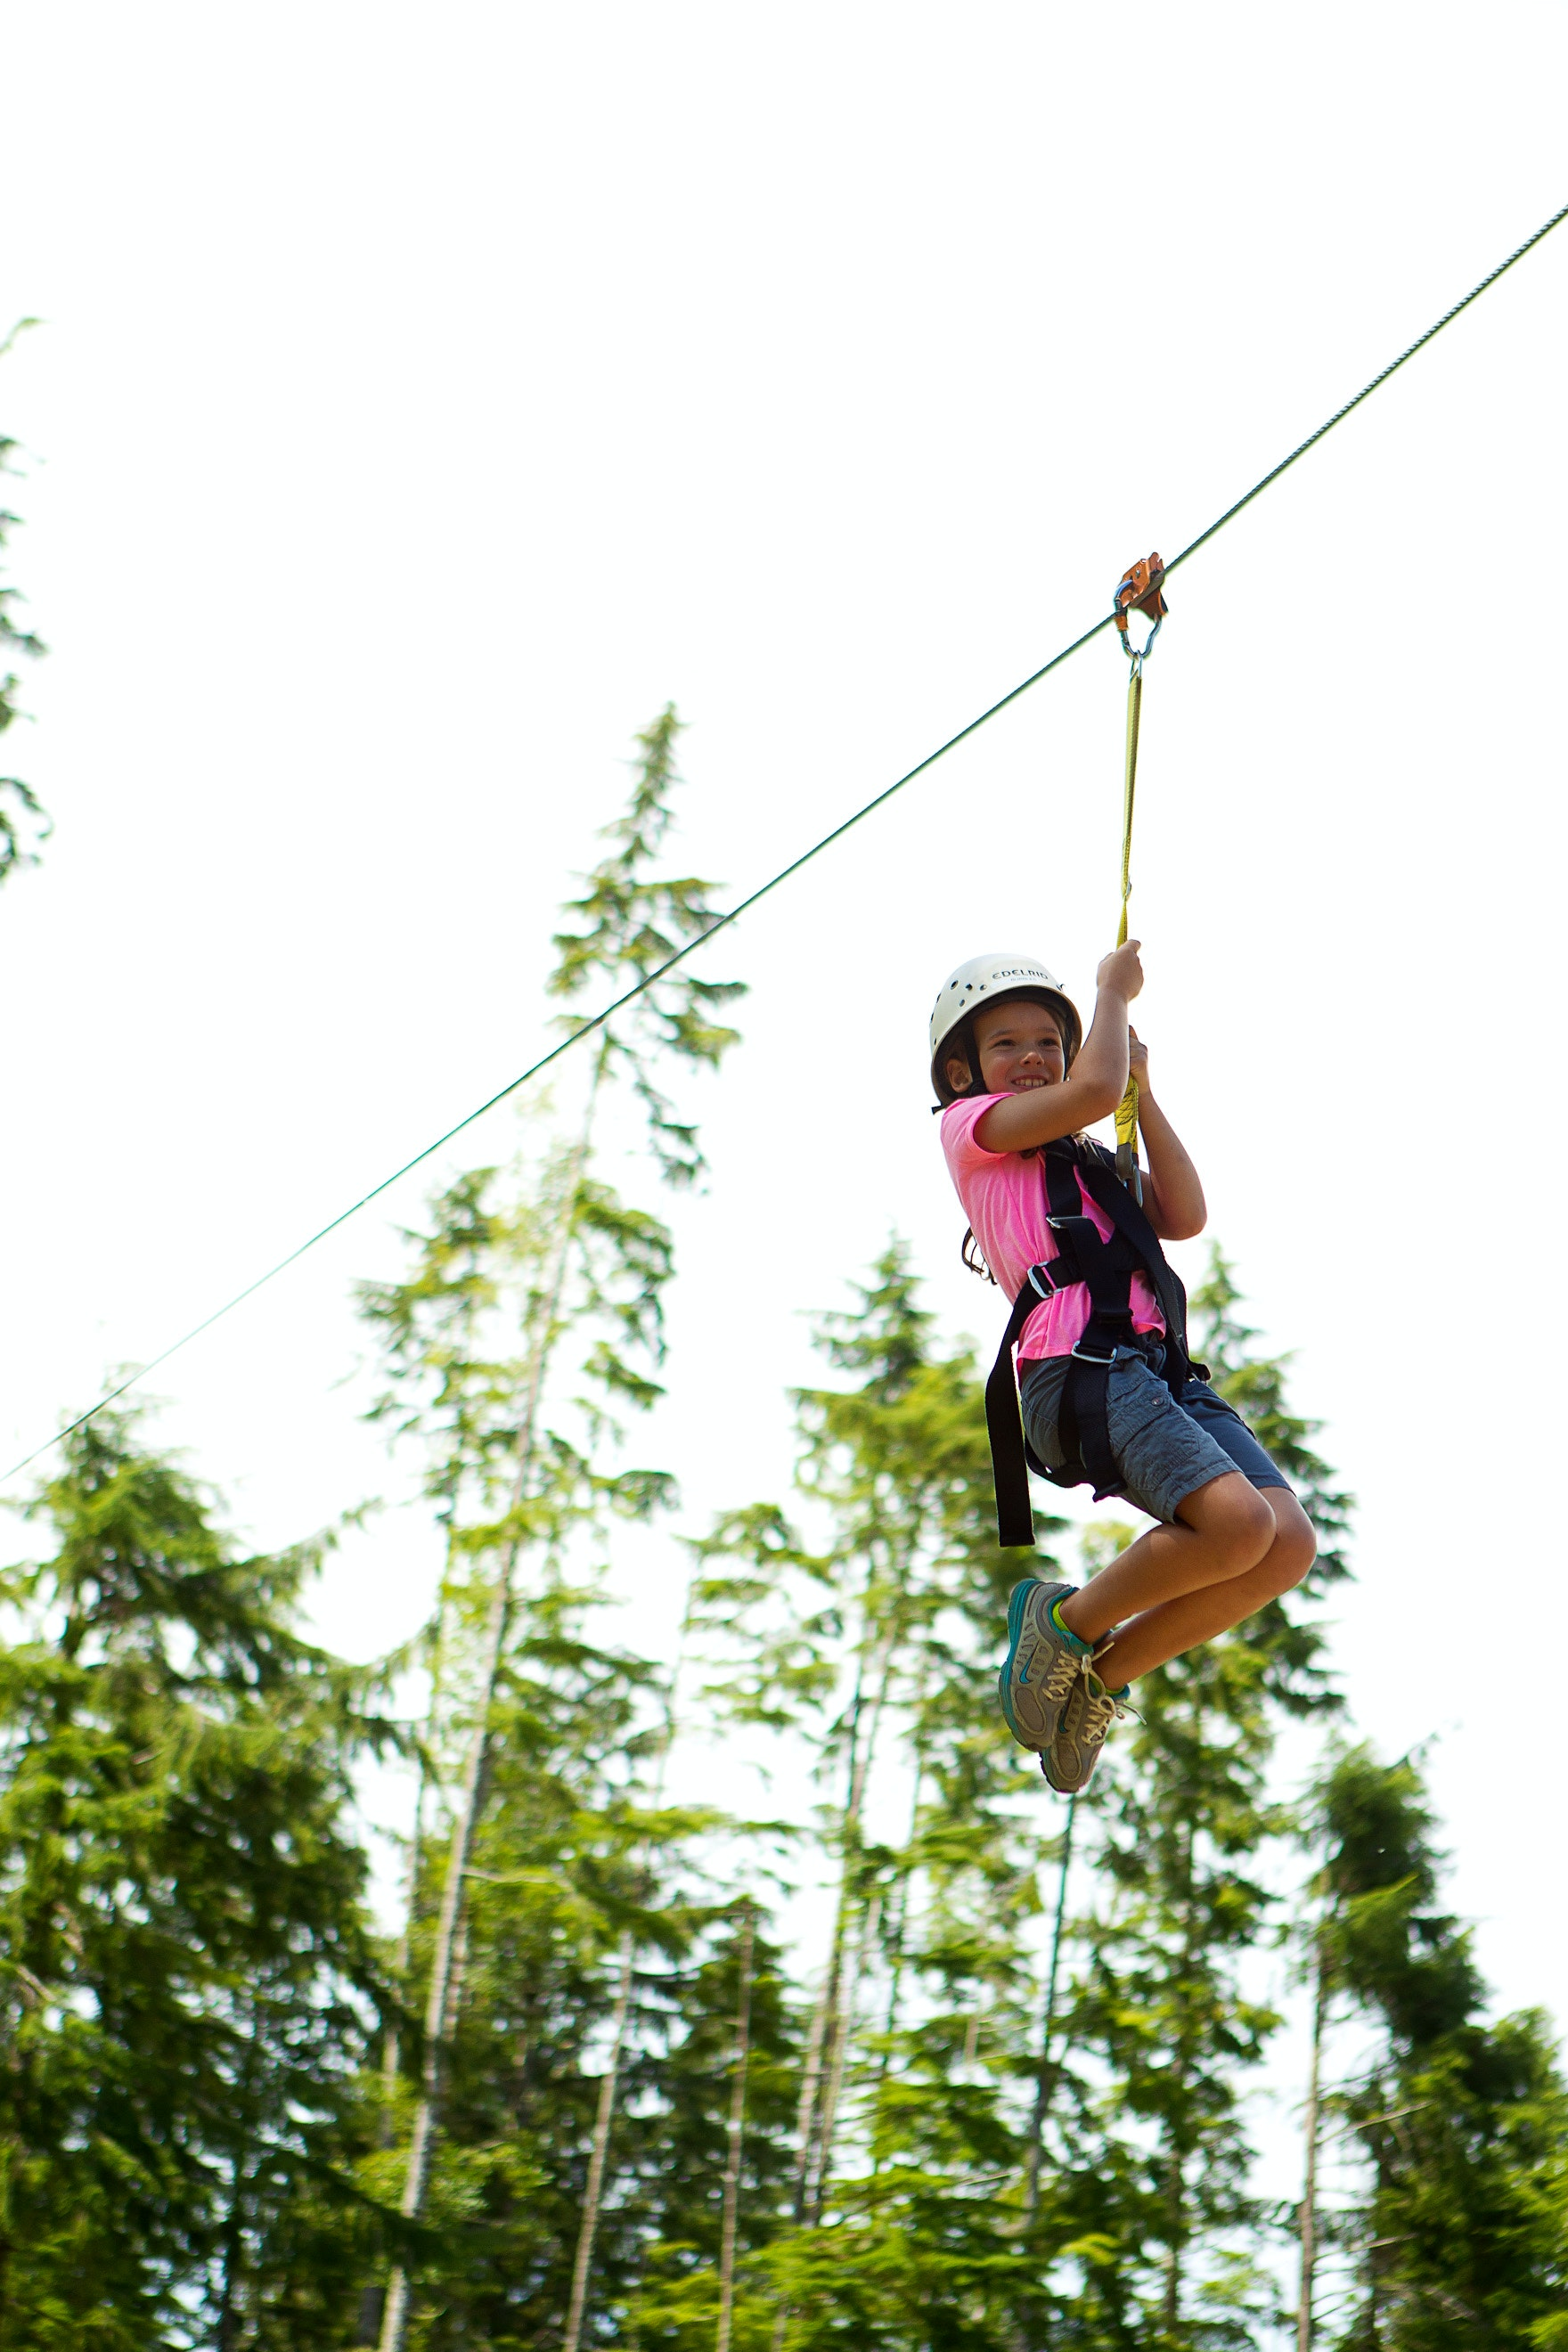 A girl zip lining over the treetops